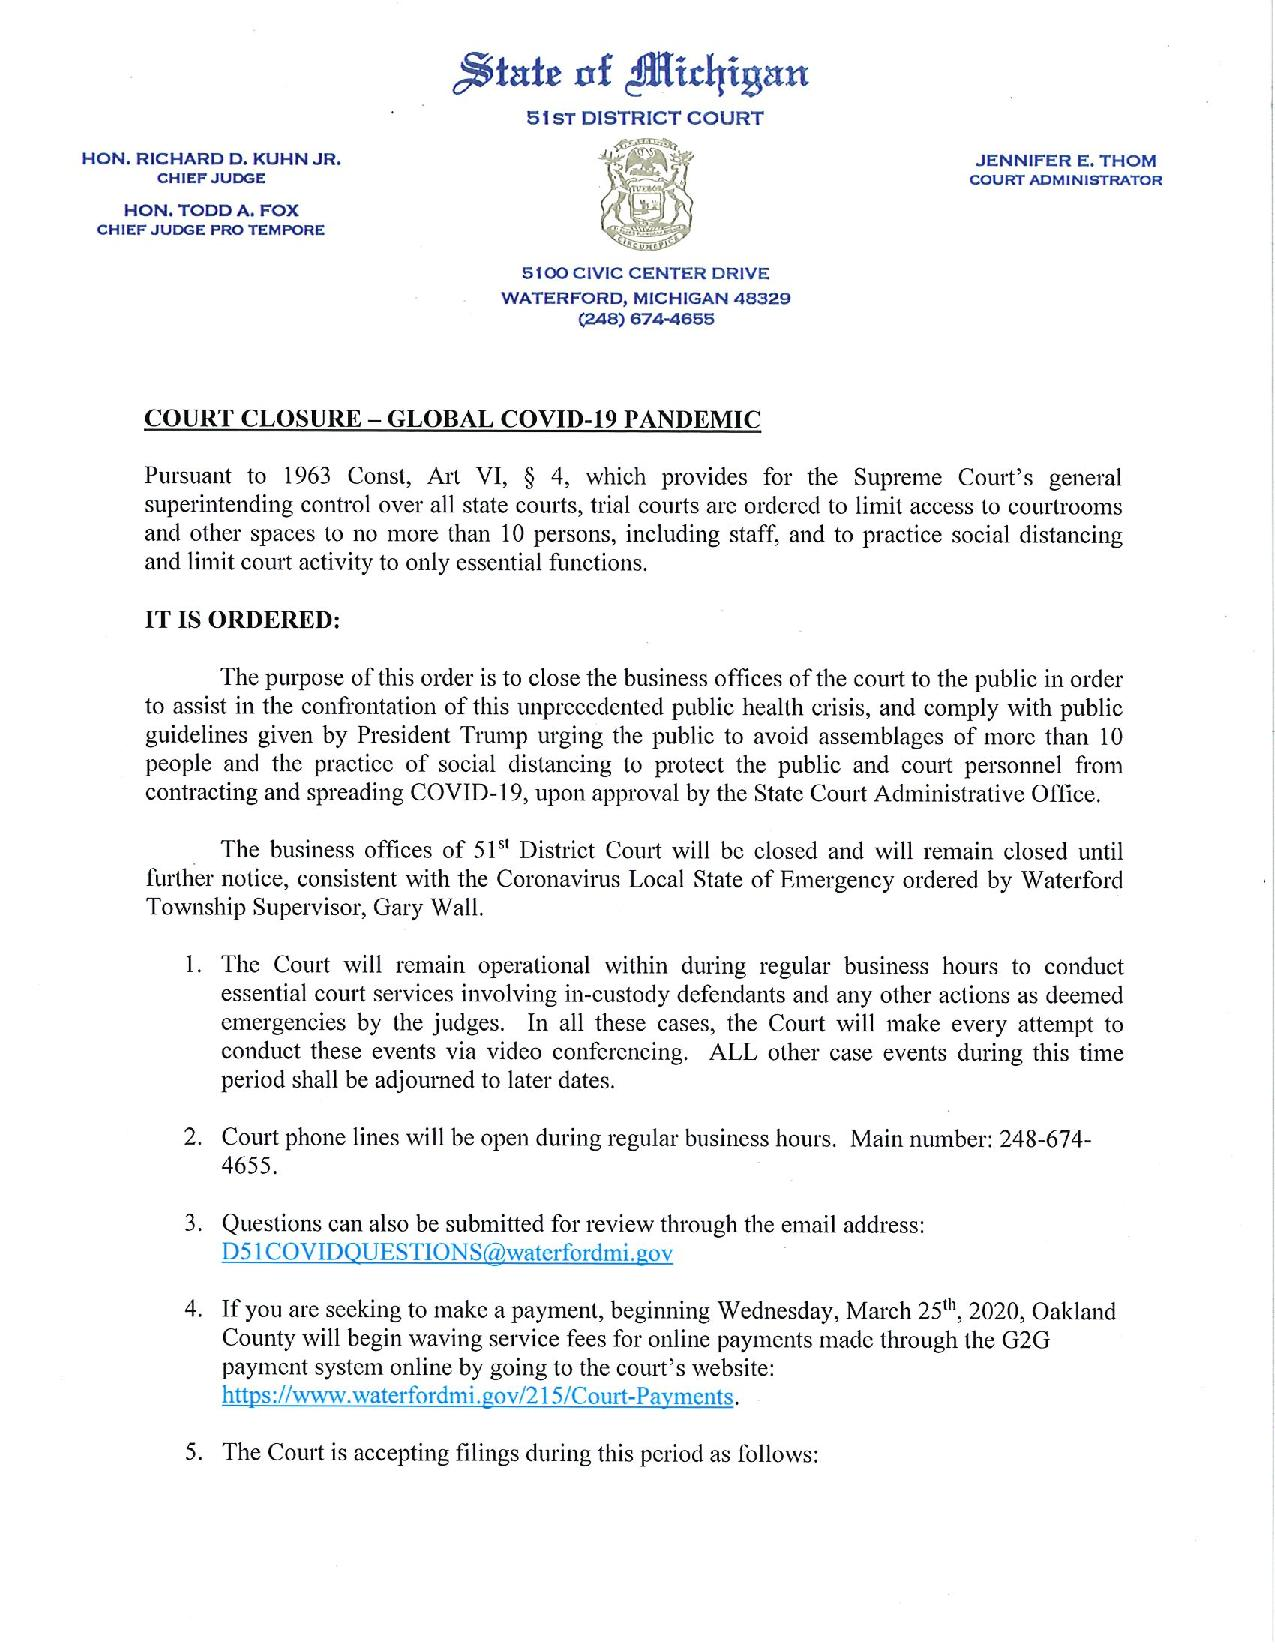 D51 Court Closure - Global COVID-19 Pandemic-page-001 - Copy